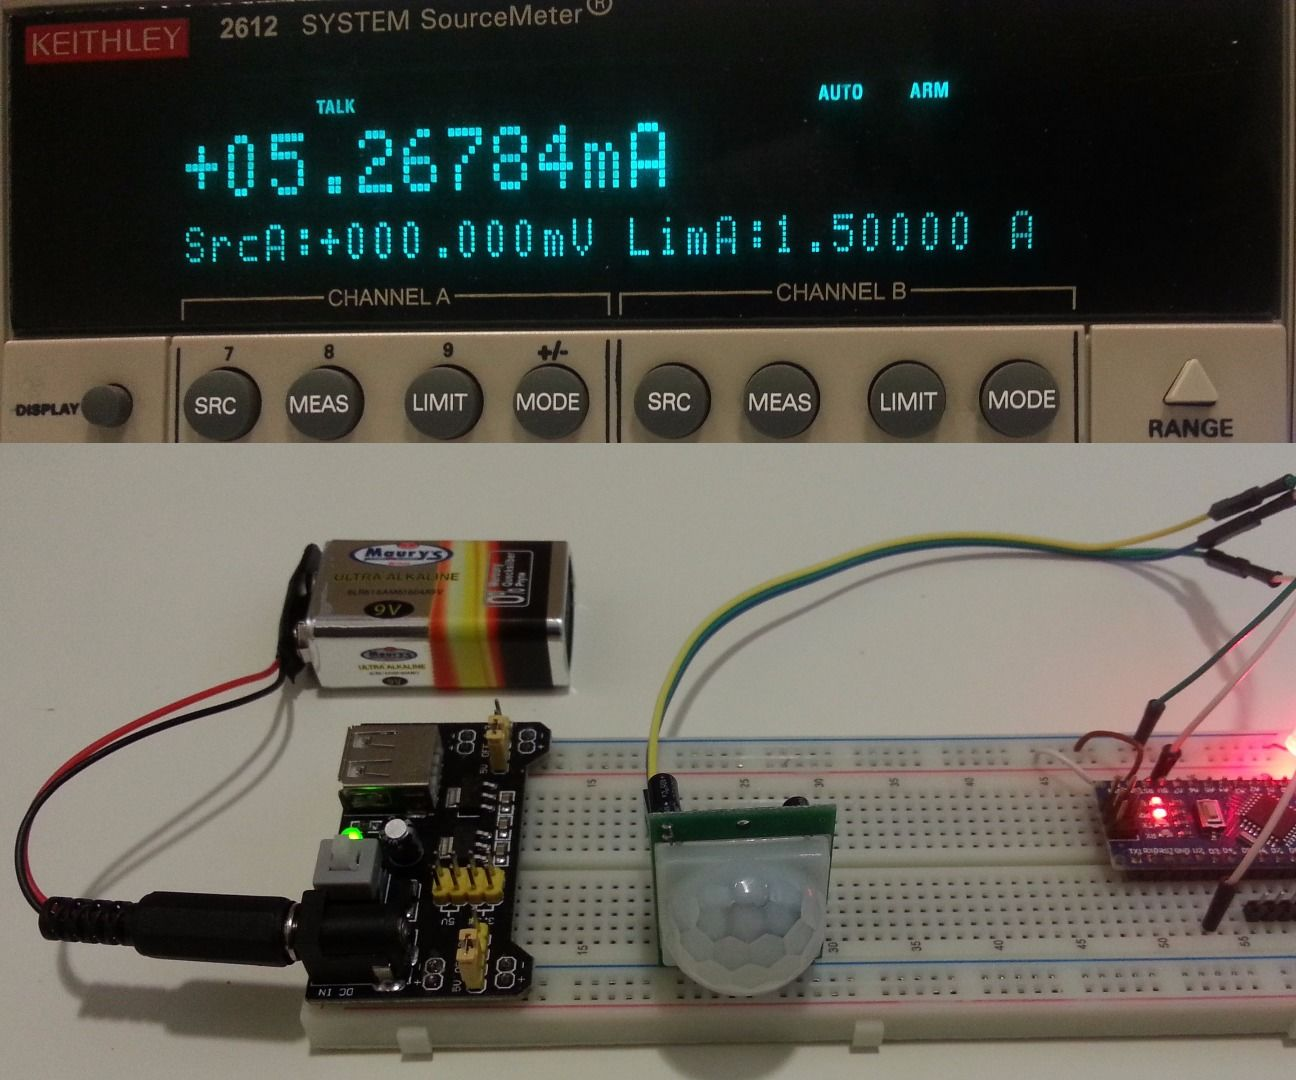 medium resolution of pir motion detector with arduino operated at lowest power consumption mode